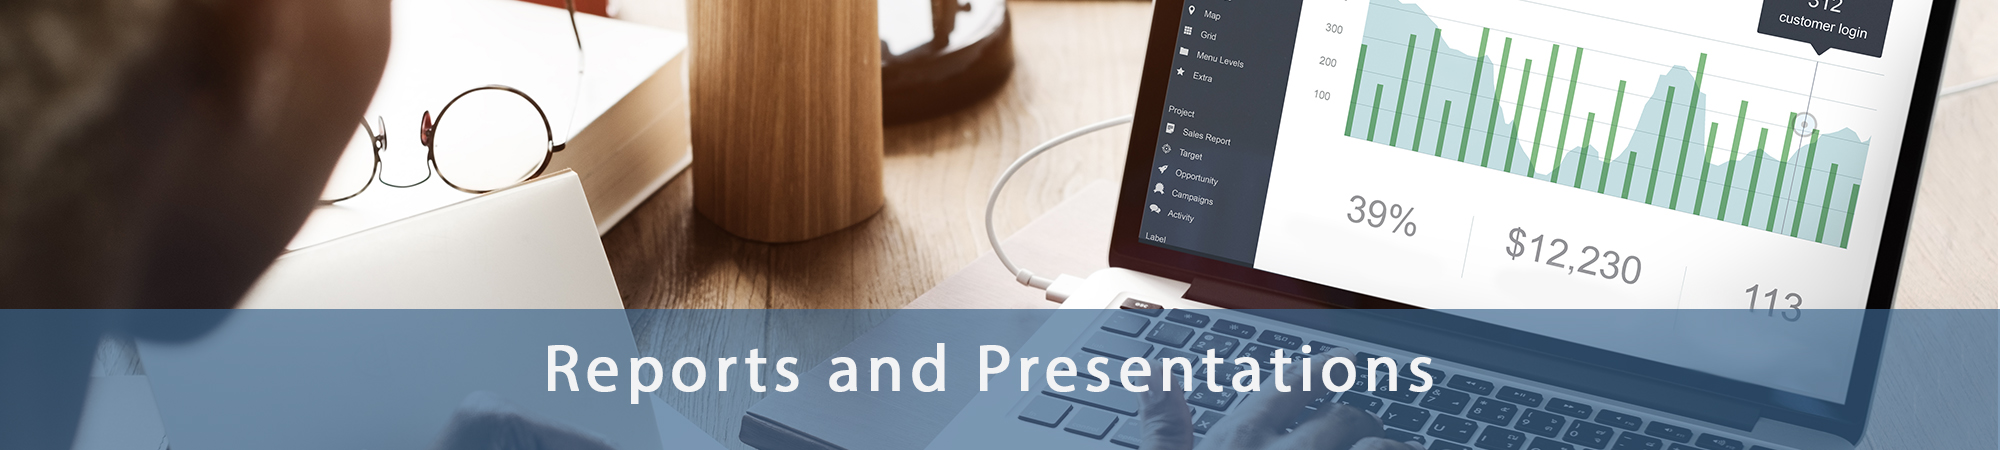 Reports and Presentations